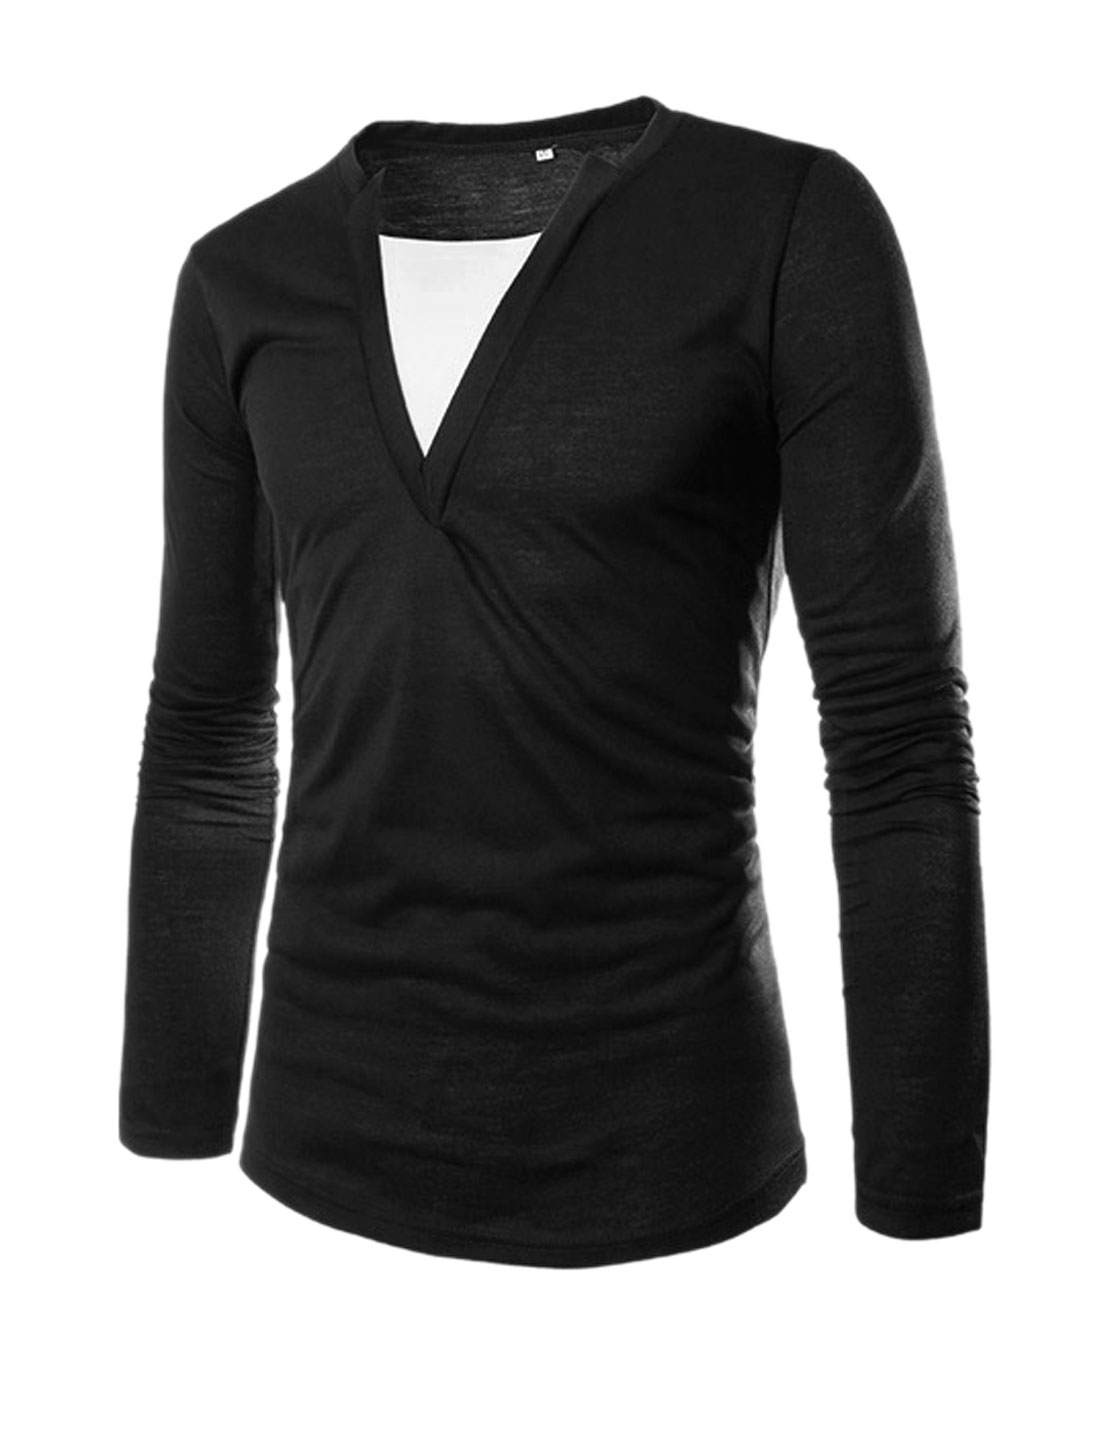 Men Black Pullover Split Neck Layered Shirts Slim Fit T-Shirt M